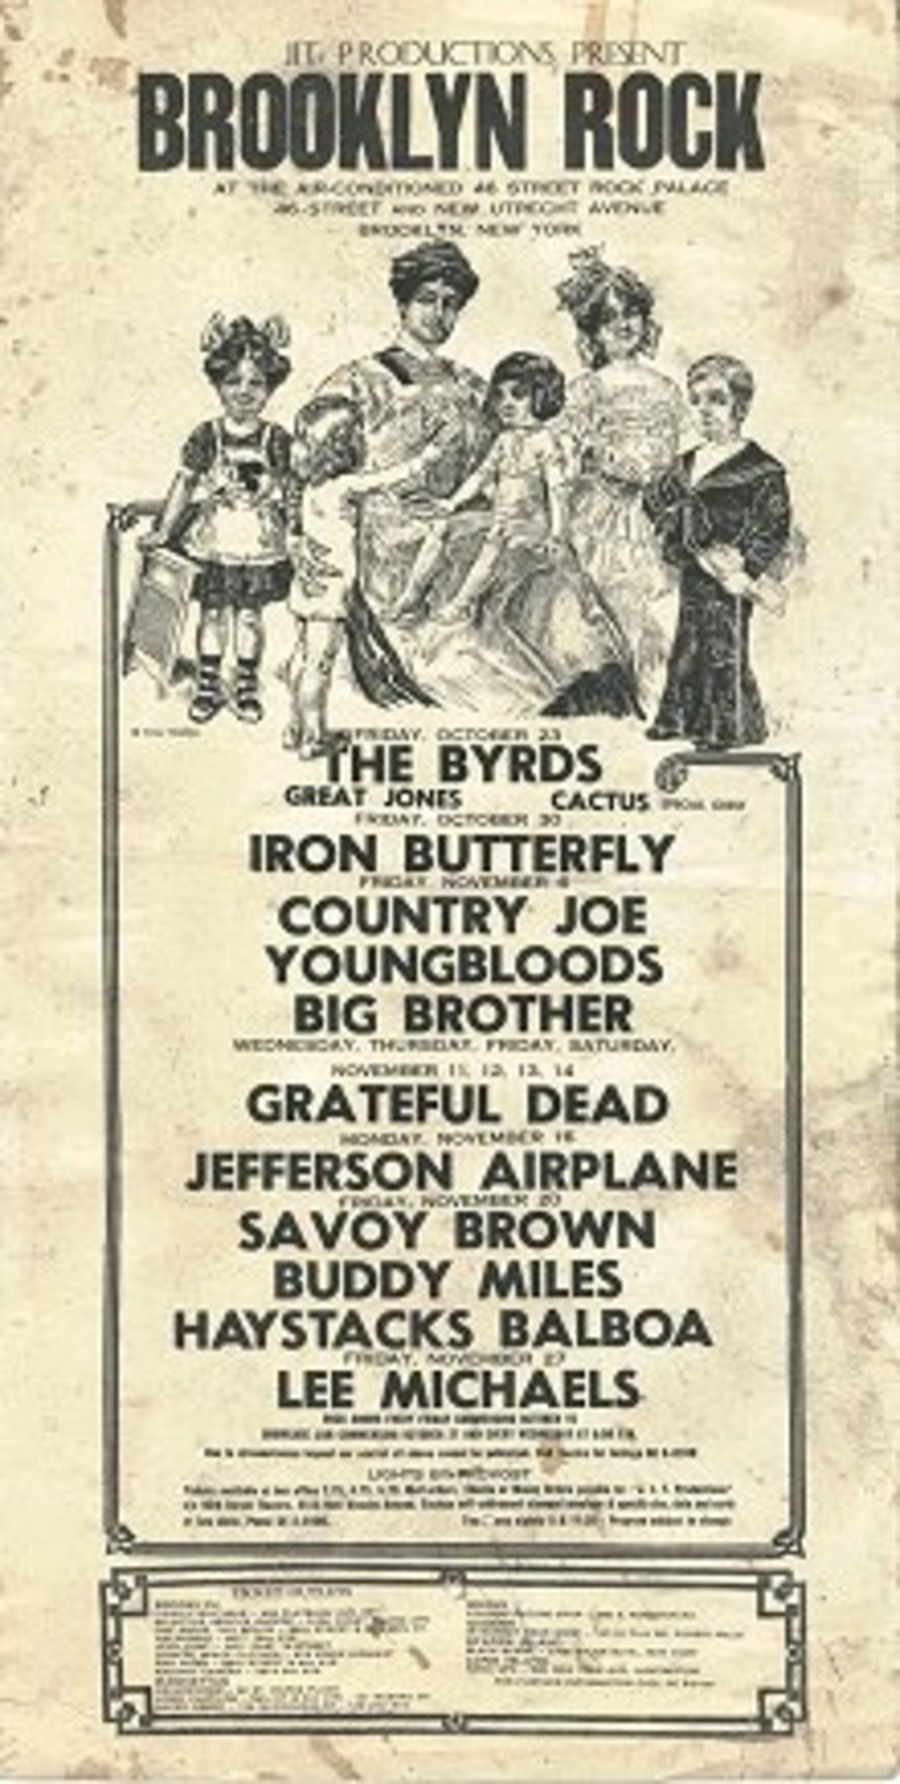 Grateful Dead Live at 46th Street Rock Palace on 1970-11-11 : Free